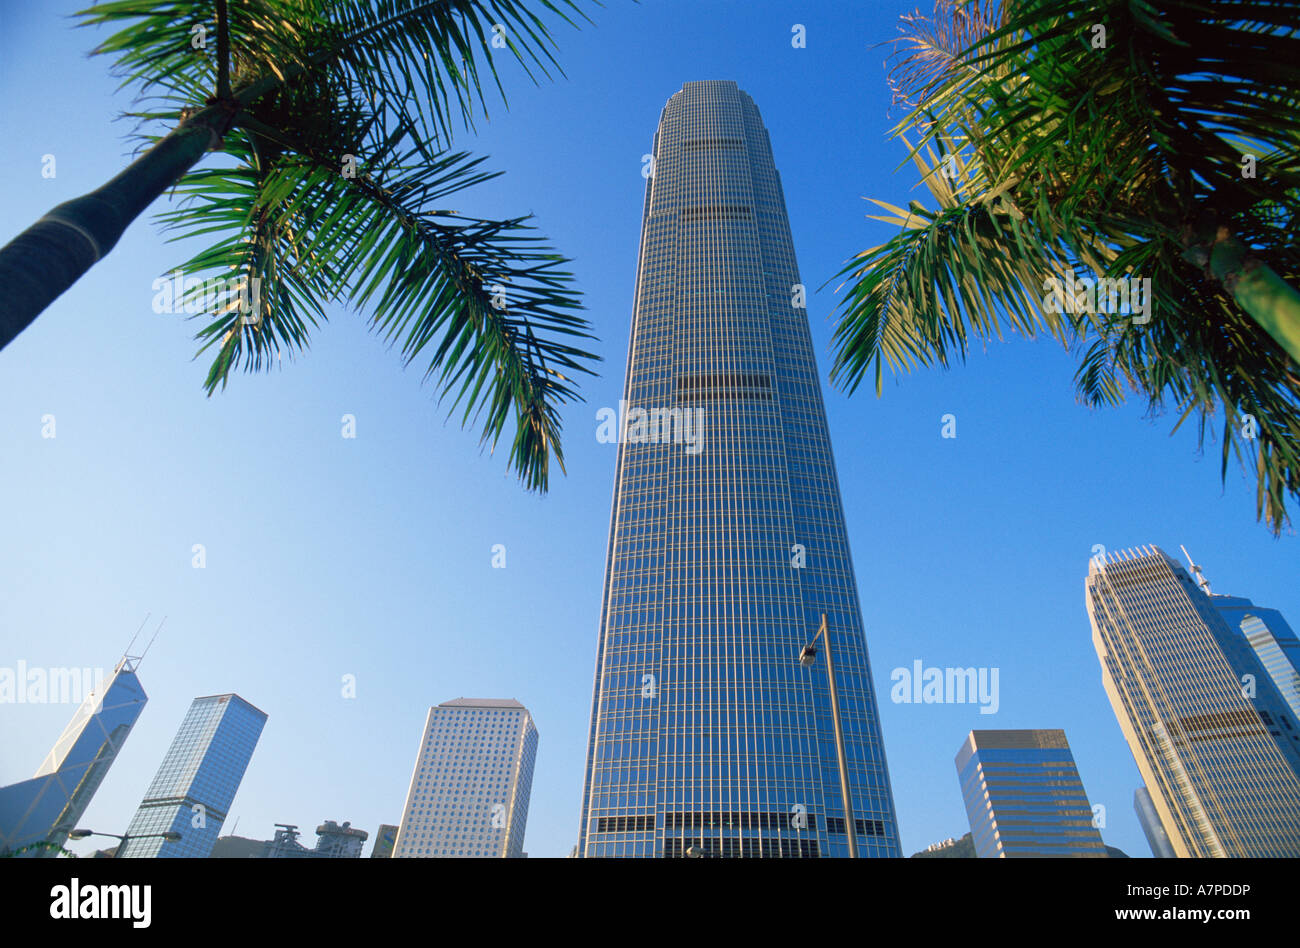 La Chine, Hong Kong, du Centre, de l'IFC, International Finance Center Building Photo Stock